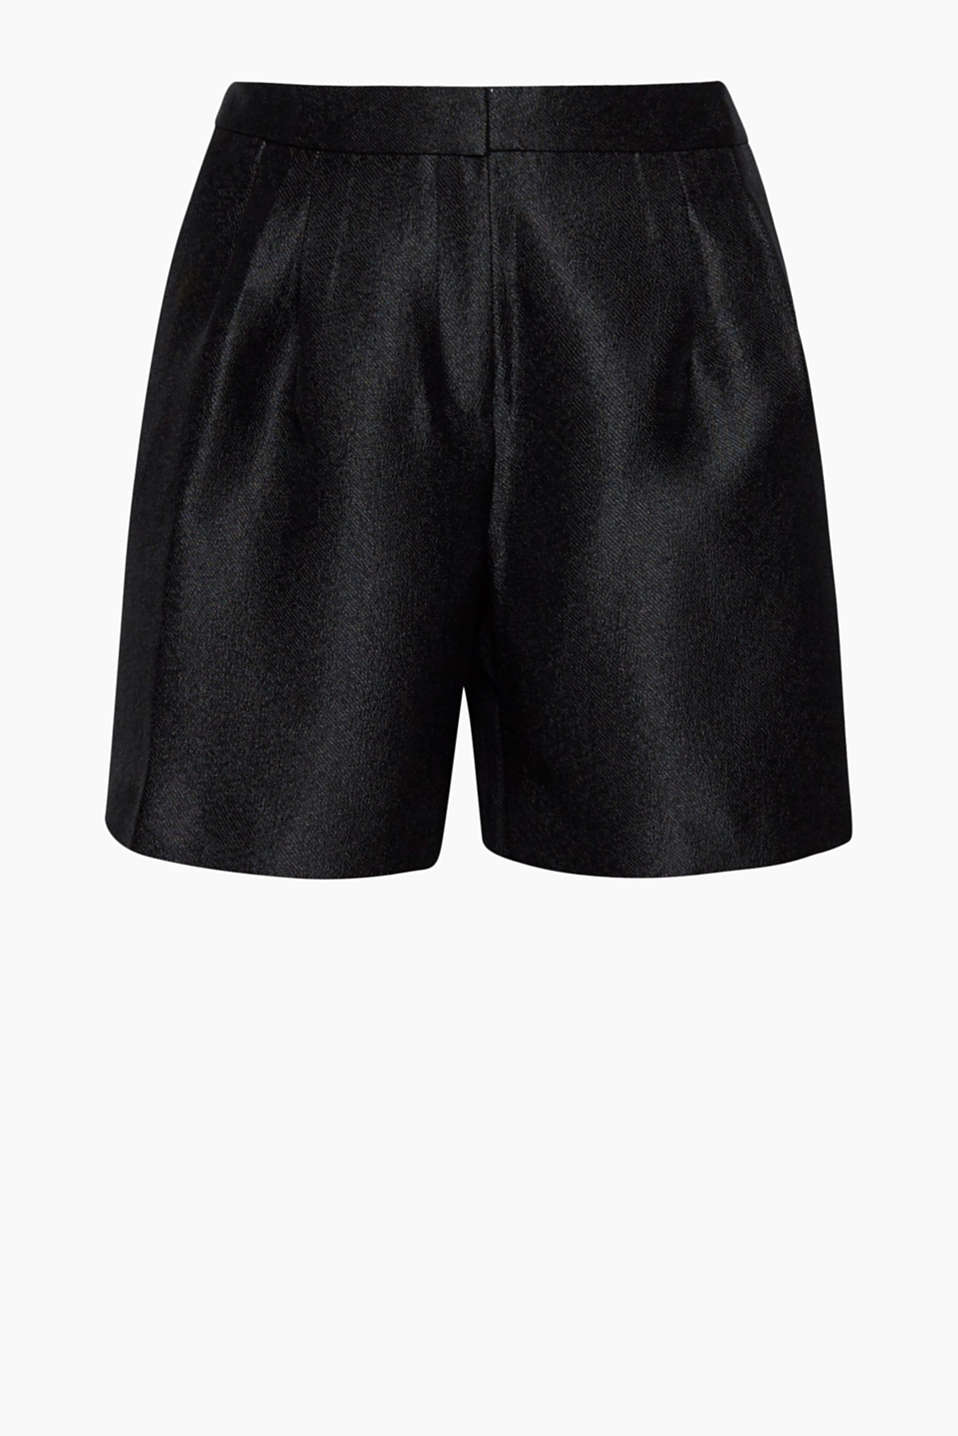 A cheeky cut in elegant fabric, these shiny shorts with a diagonal texture are the perfect party piece with a twist!